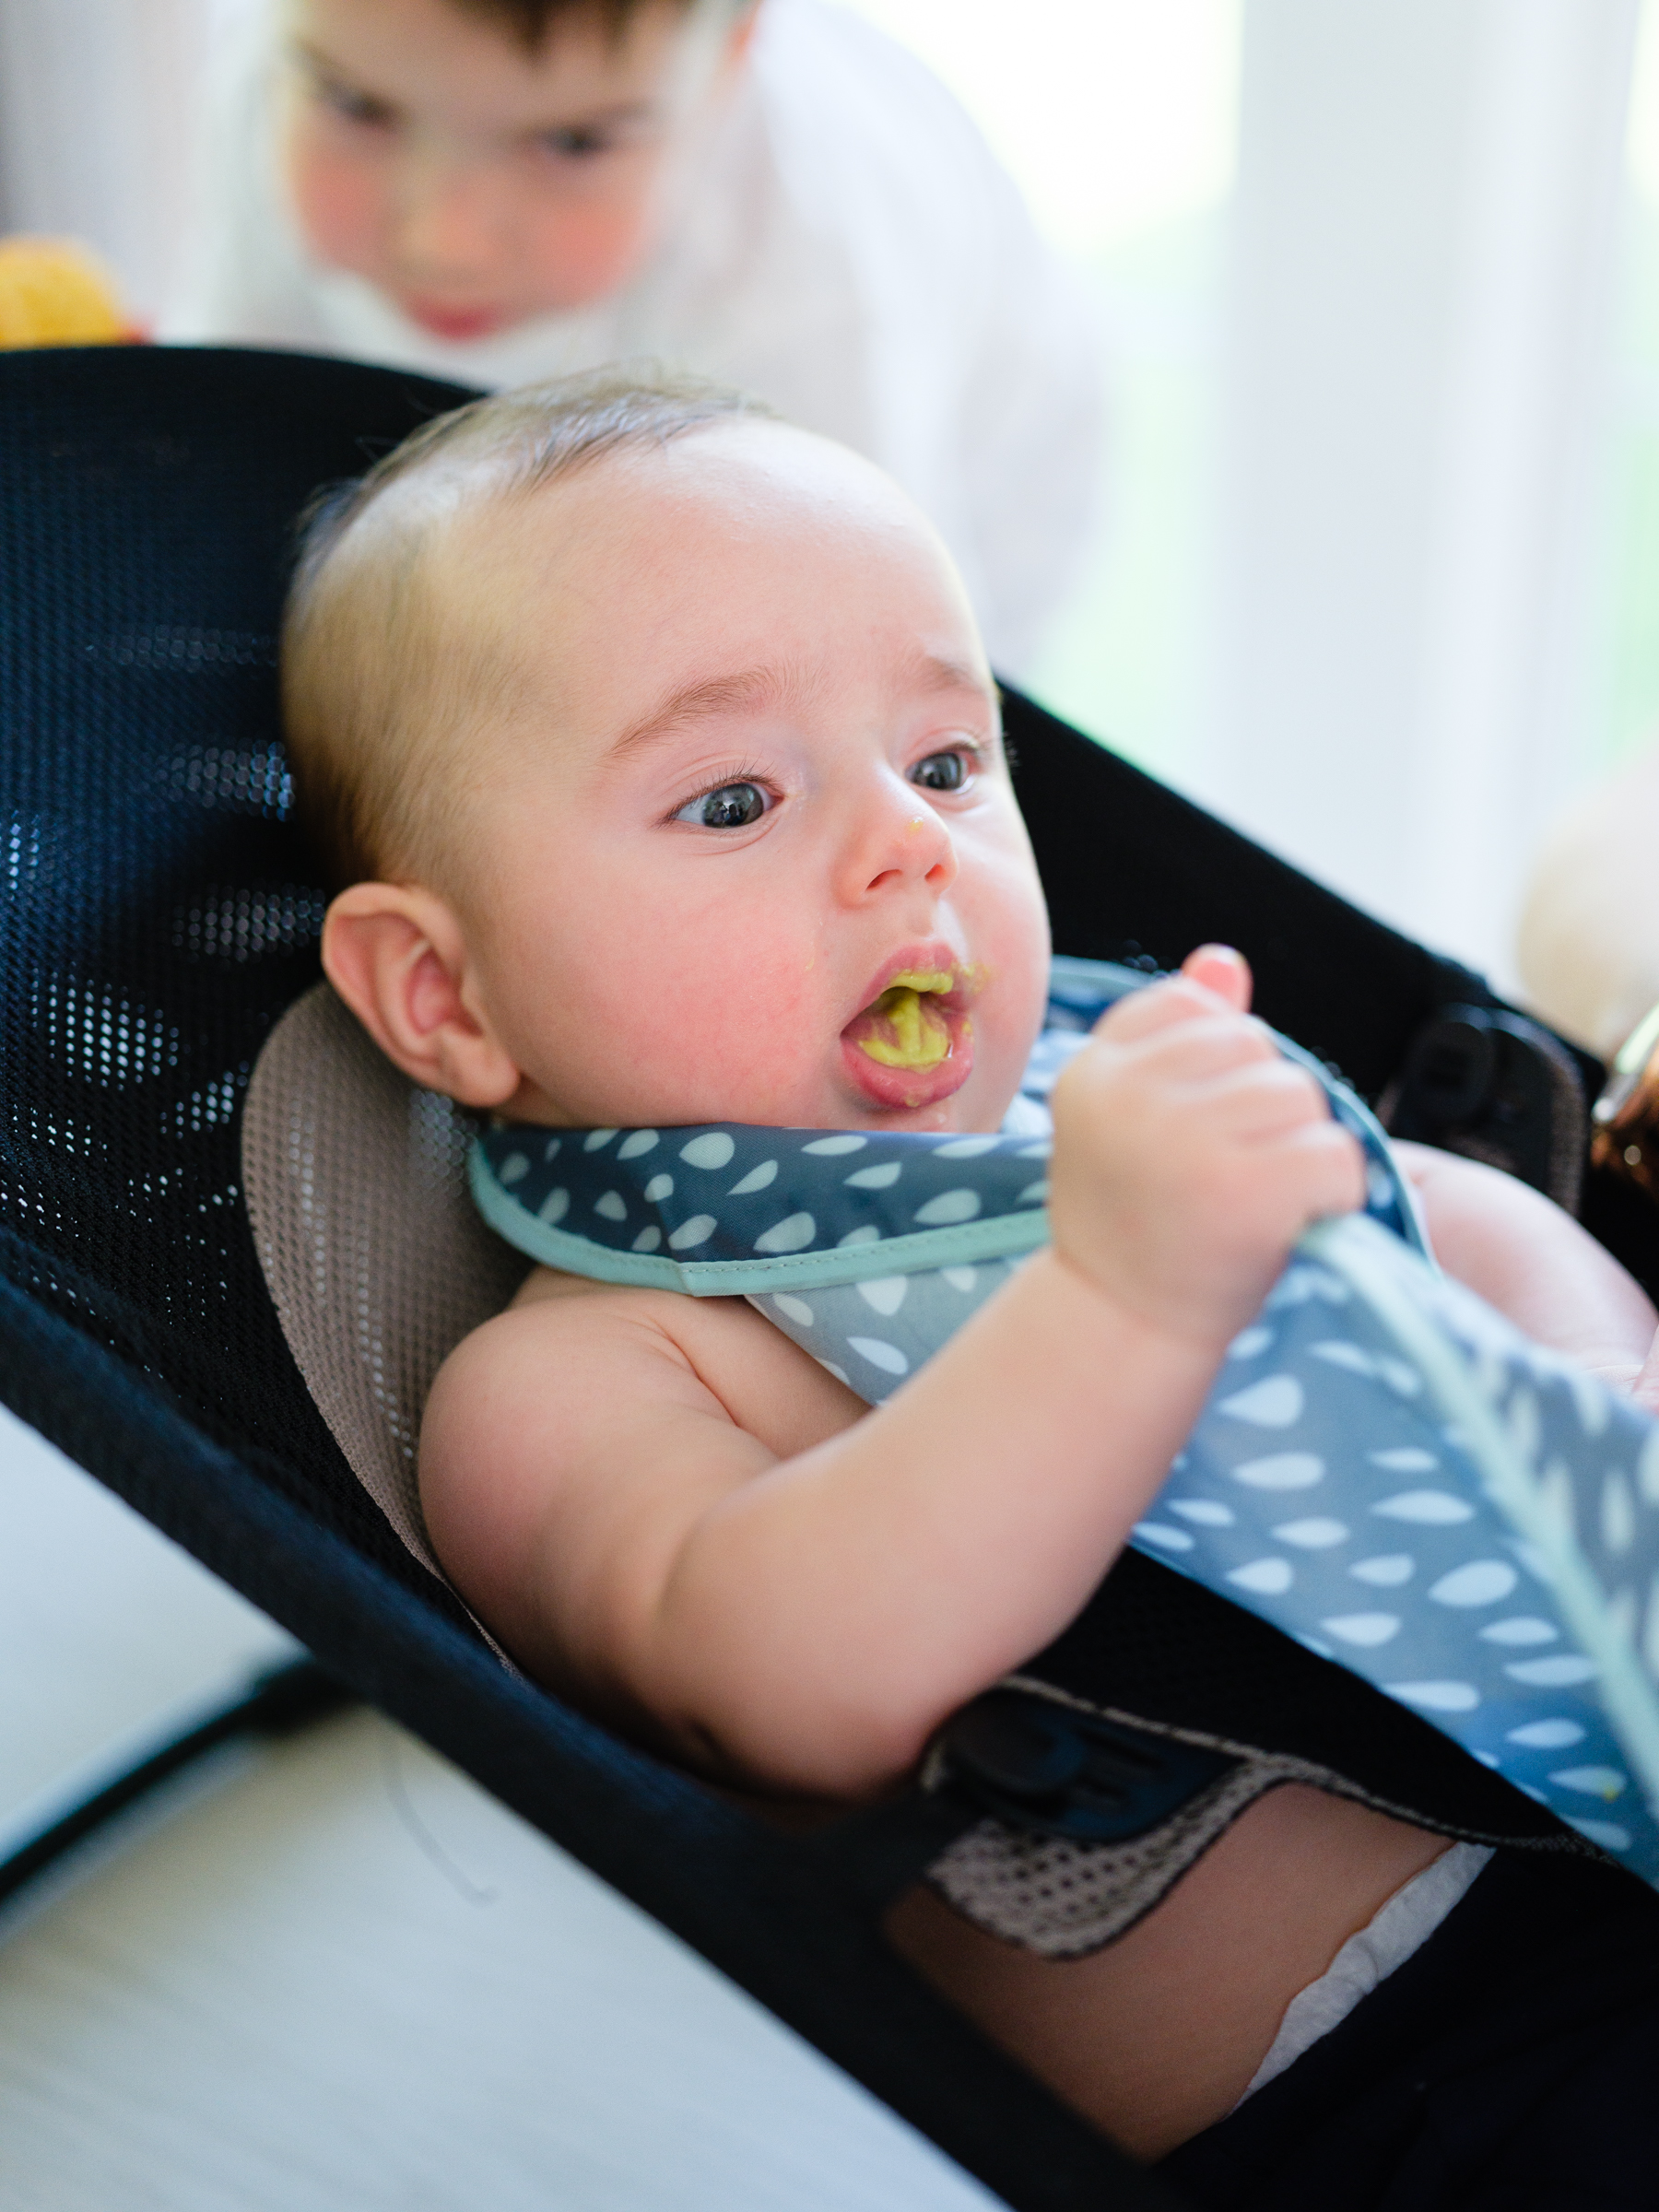 Eva Amurri shares details on how she's introducing baby to solids